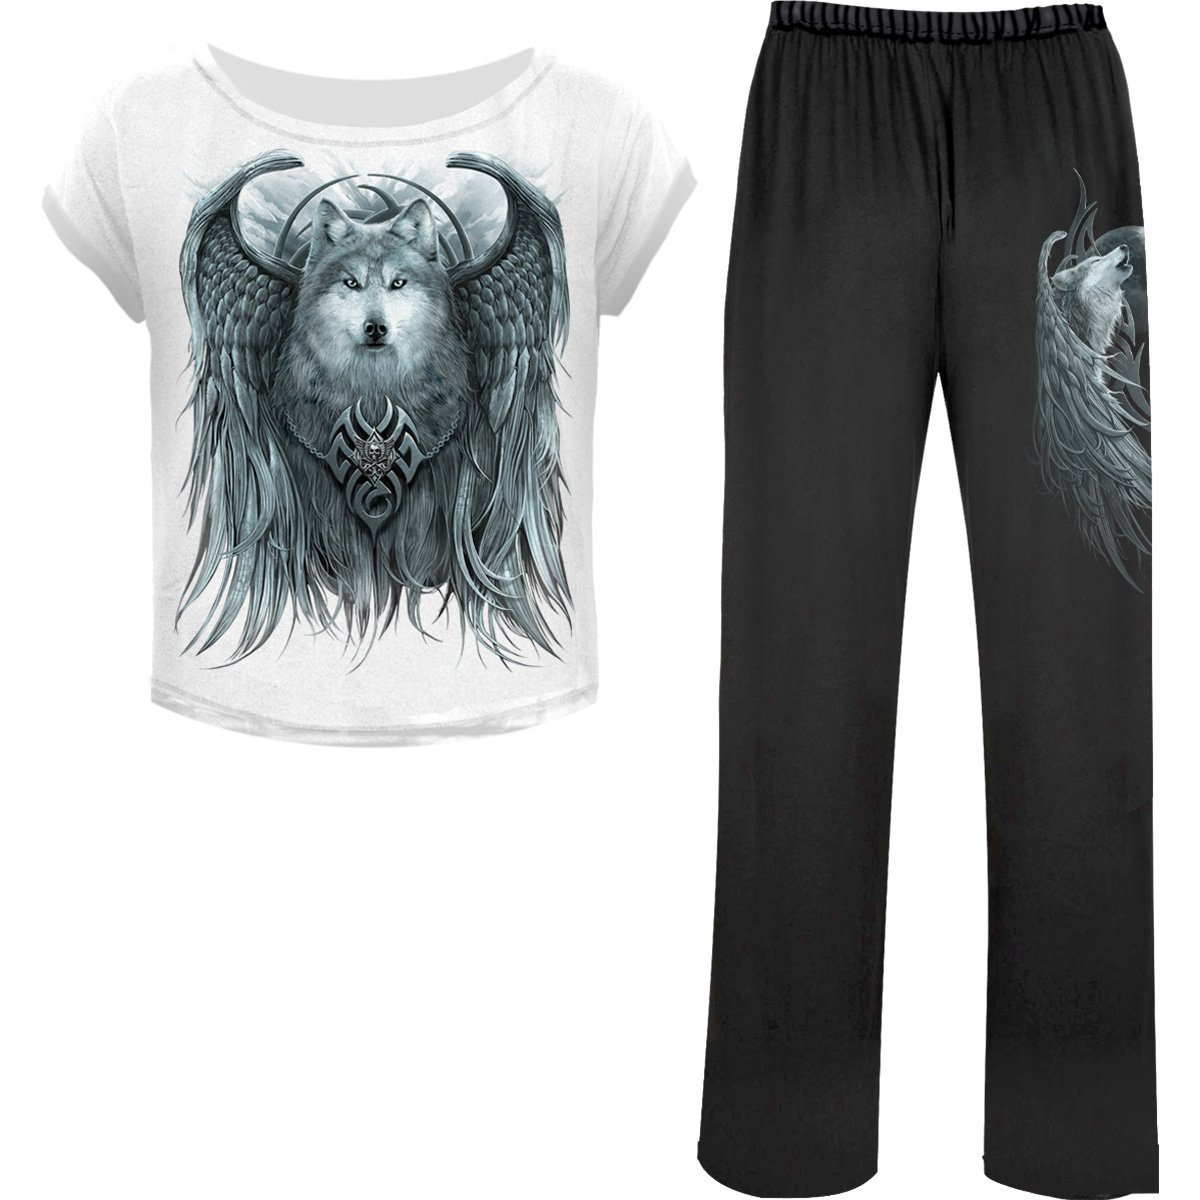 Howling Wolf Spirit Women's 4-Piece Pajama Set